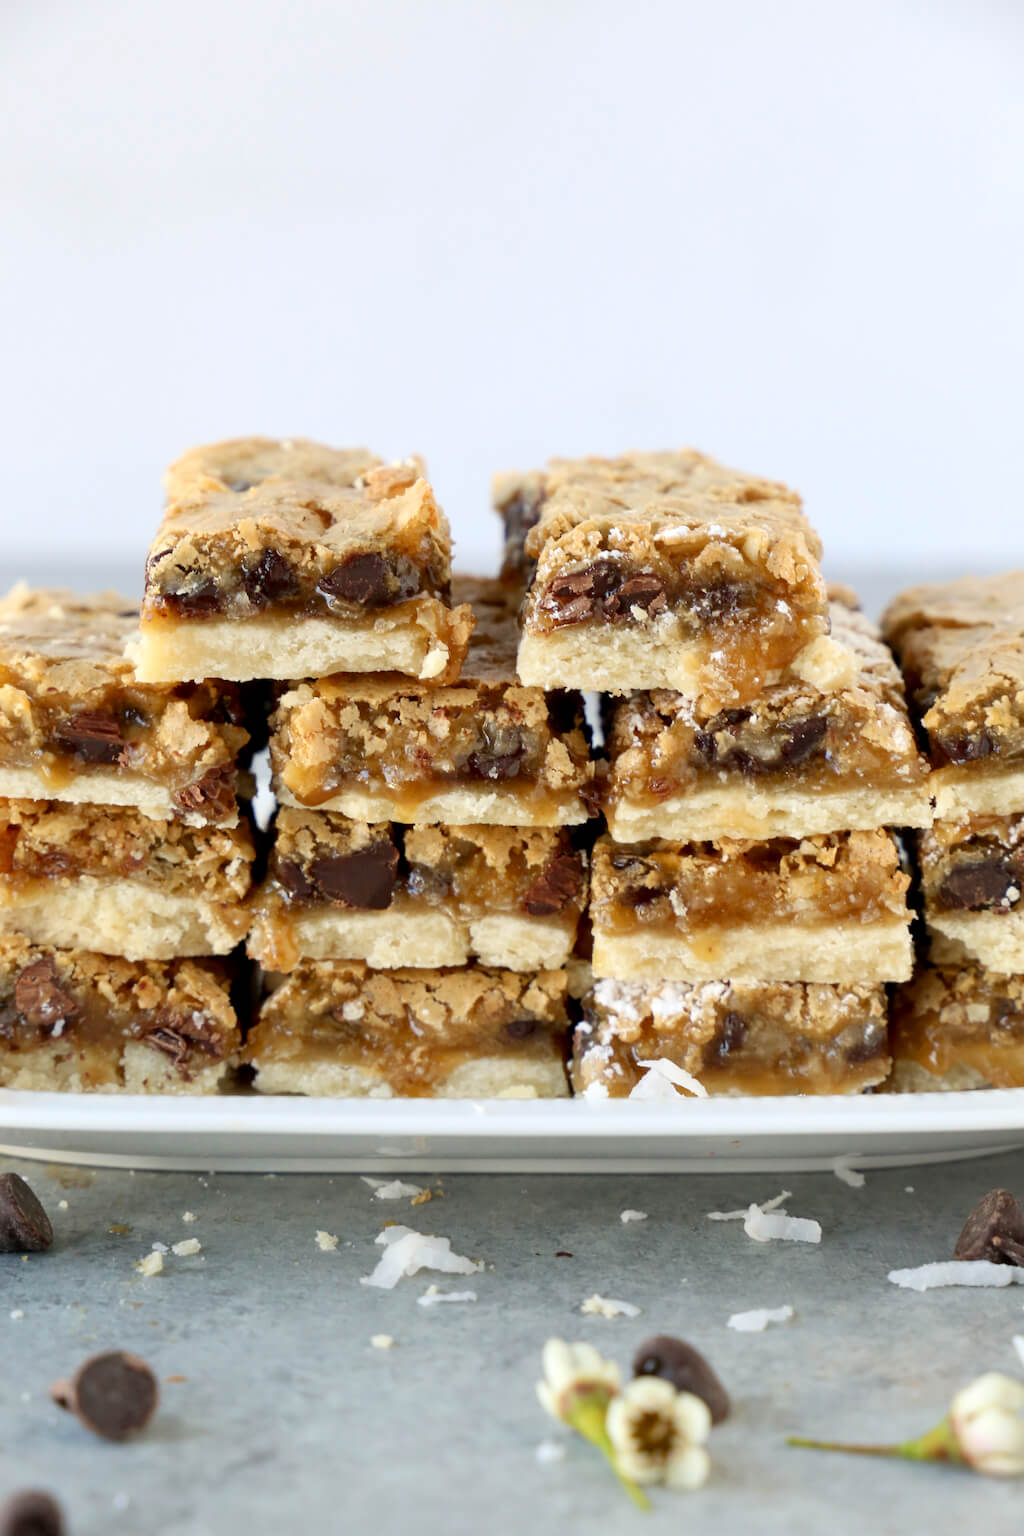 a stack of yum yum bars on a platter